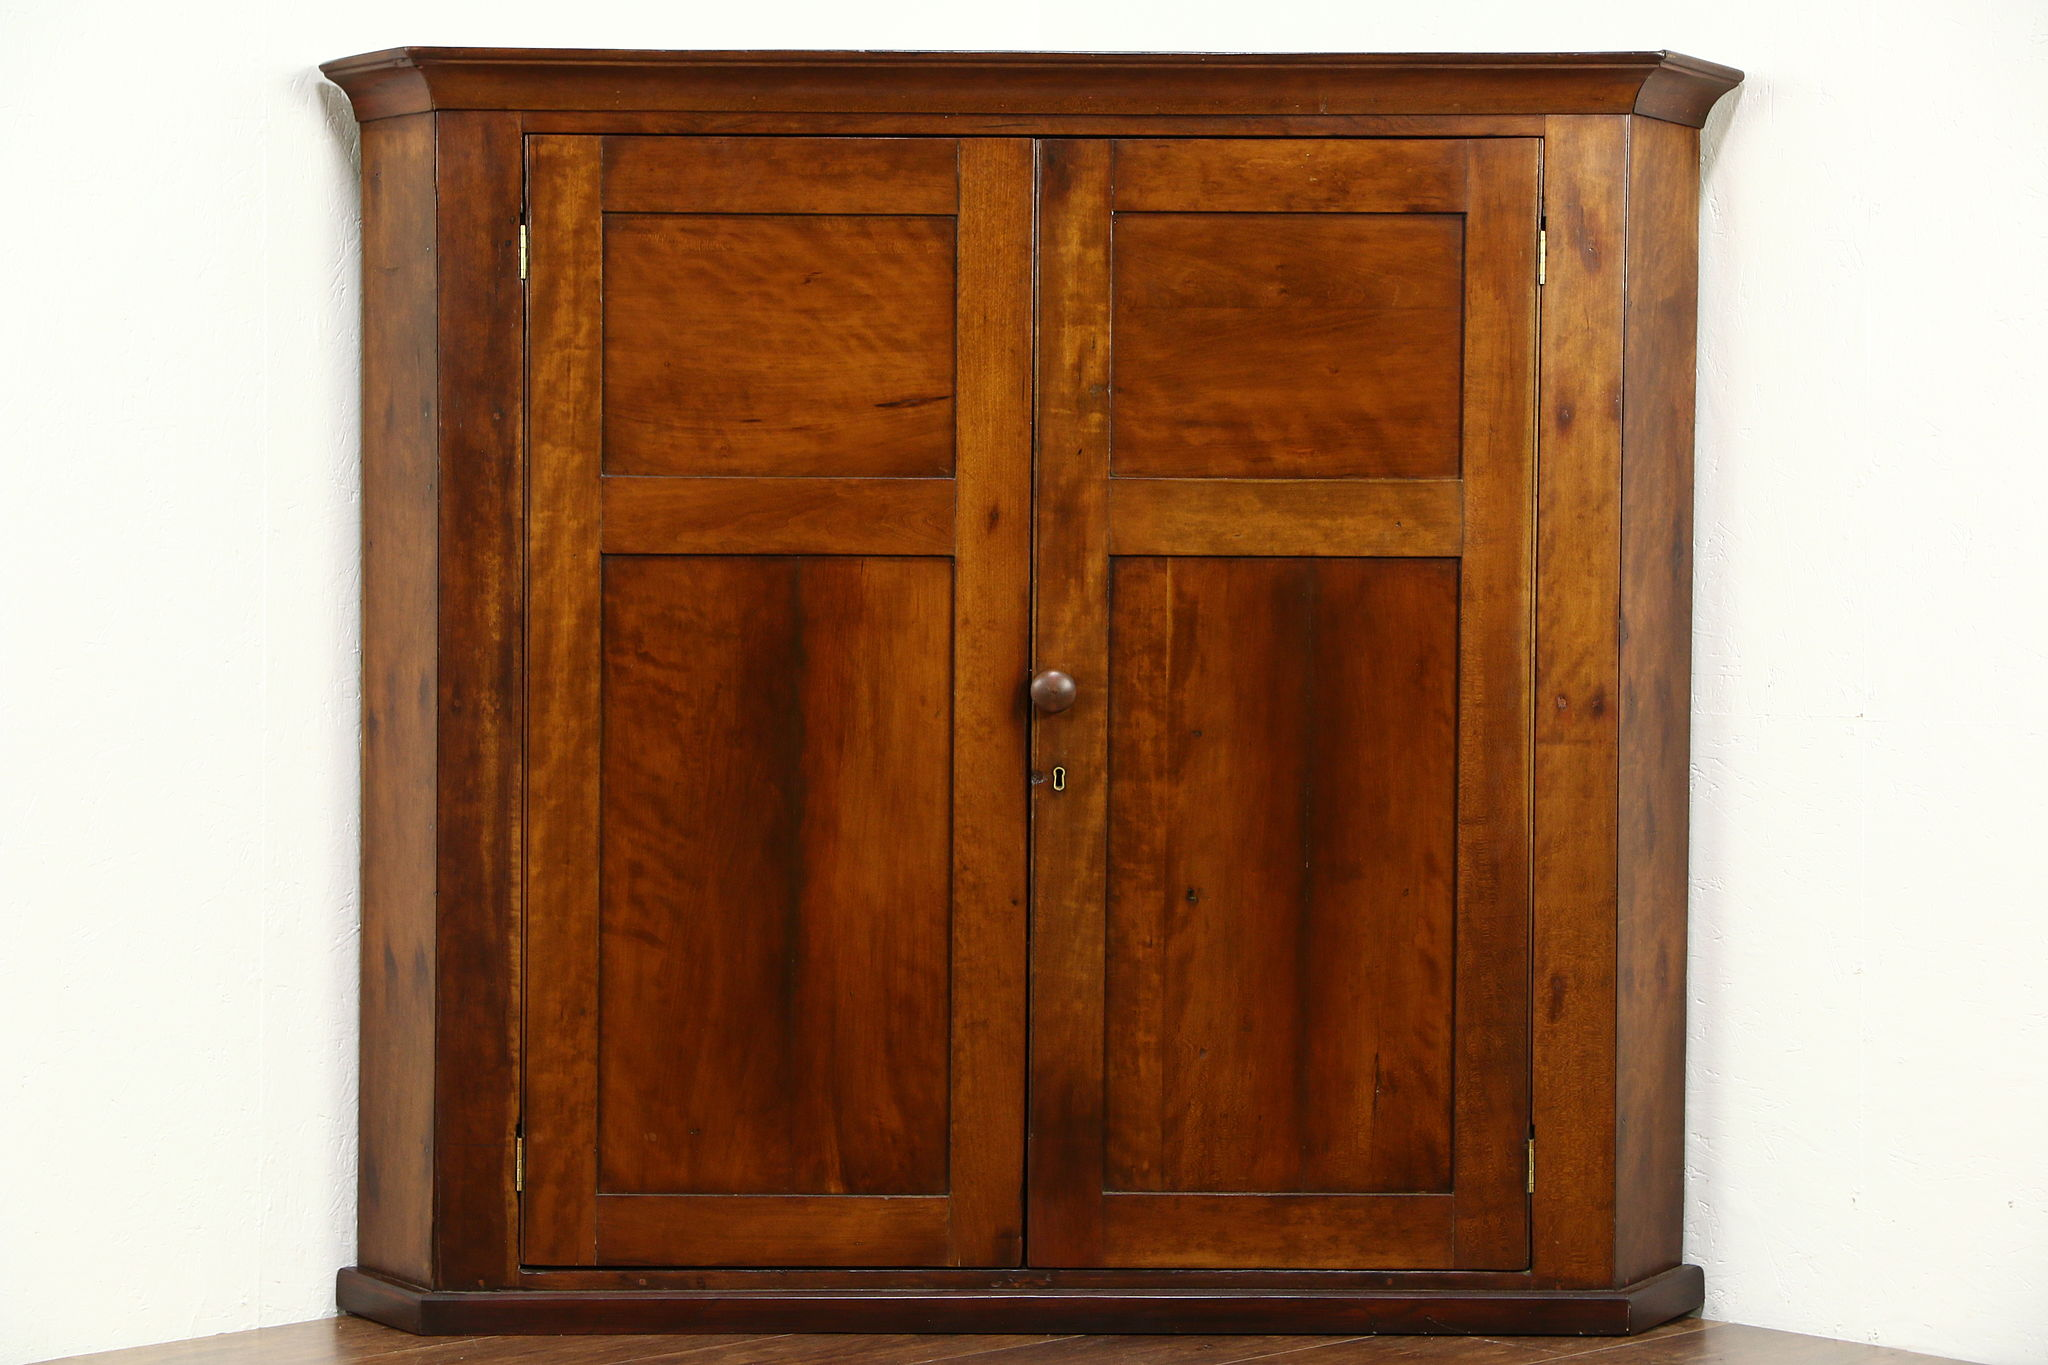 Exceptionnel Cherry Pennsylvania 1840 Antique Corner Cabinet Or Hanging Cupboard